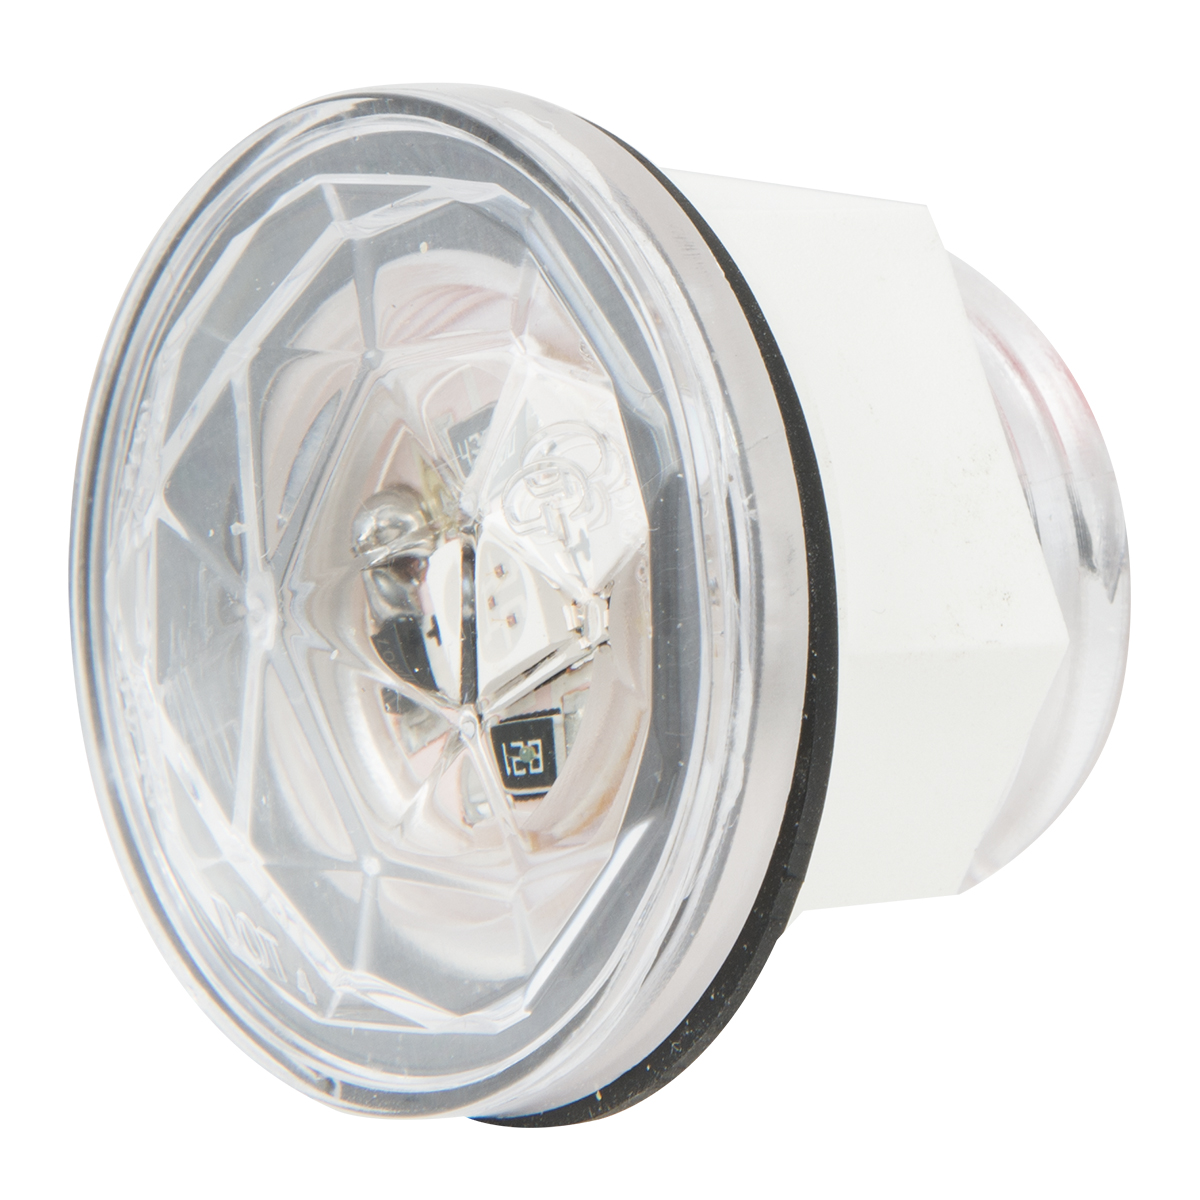 "1"" Dia. Dual Function Diamond Lens LED Light"